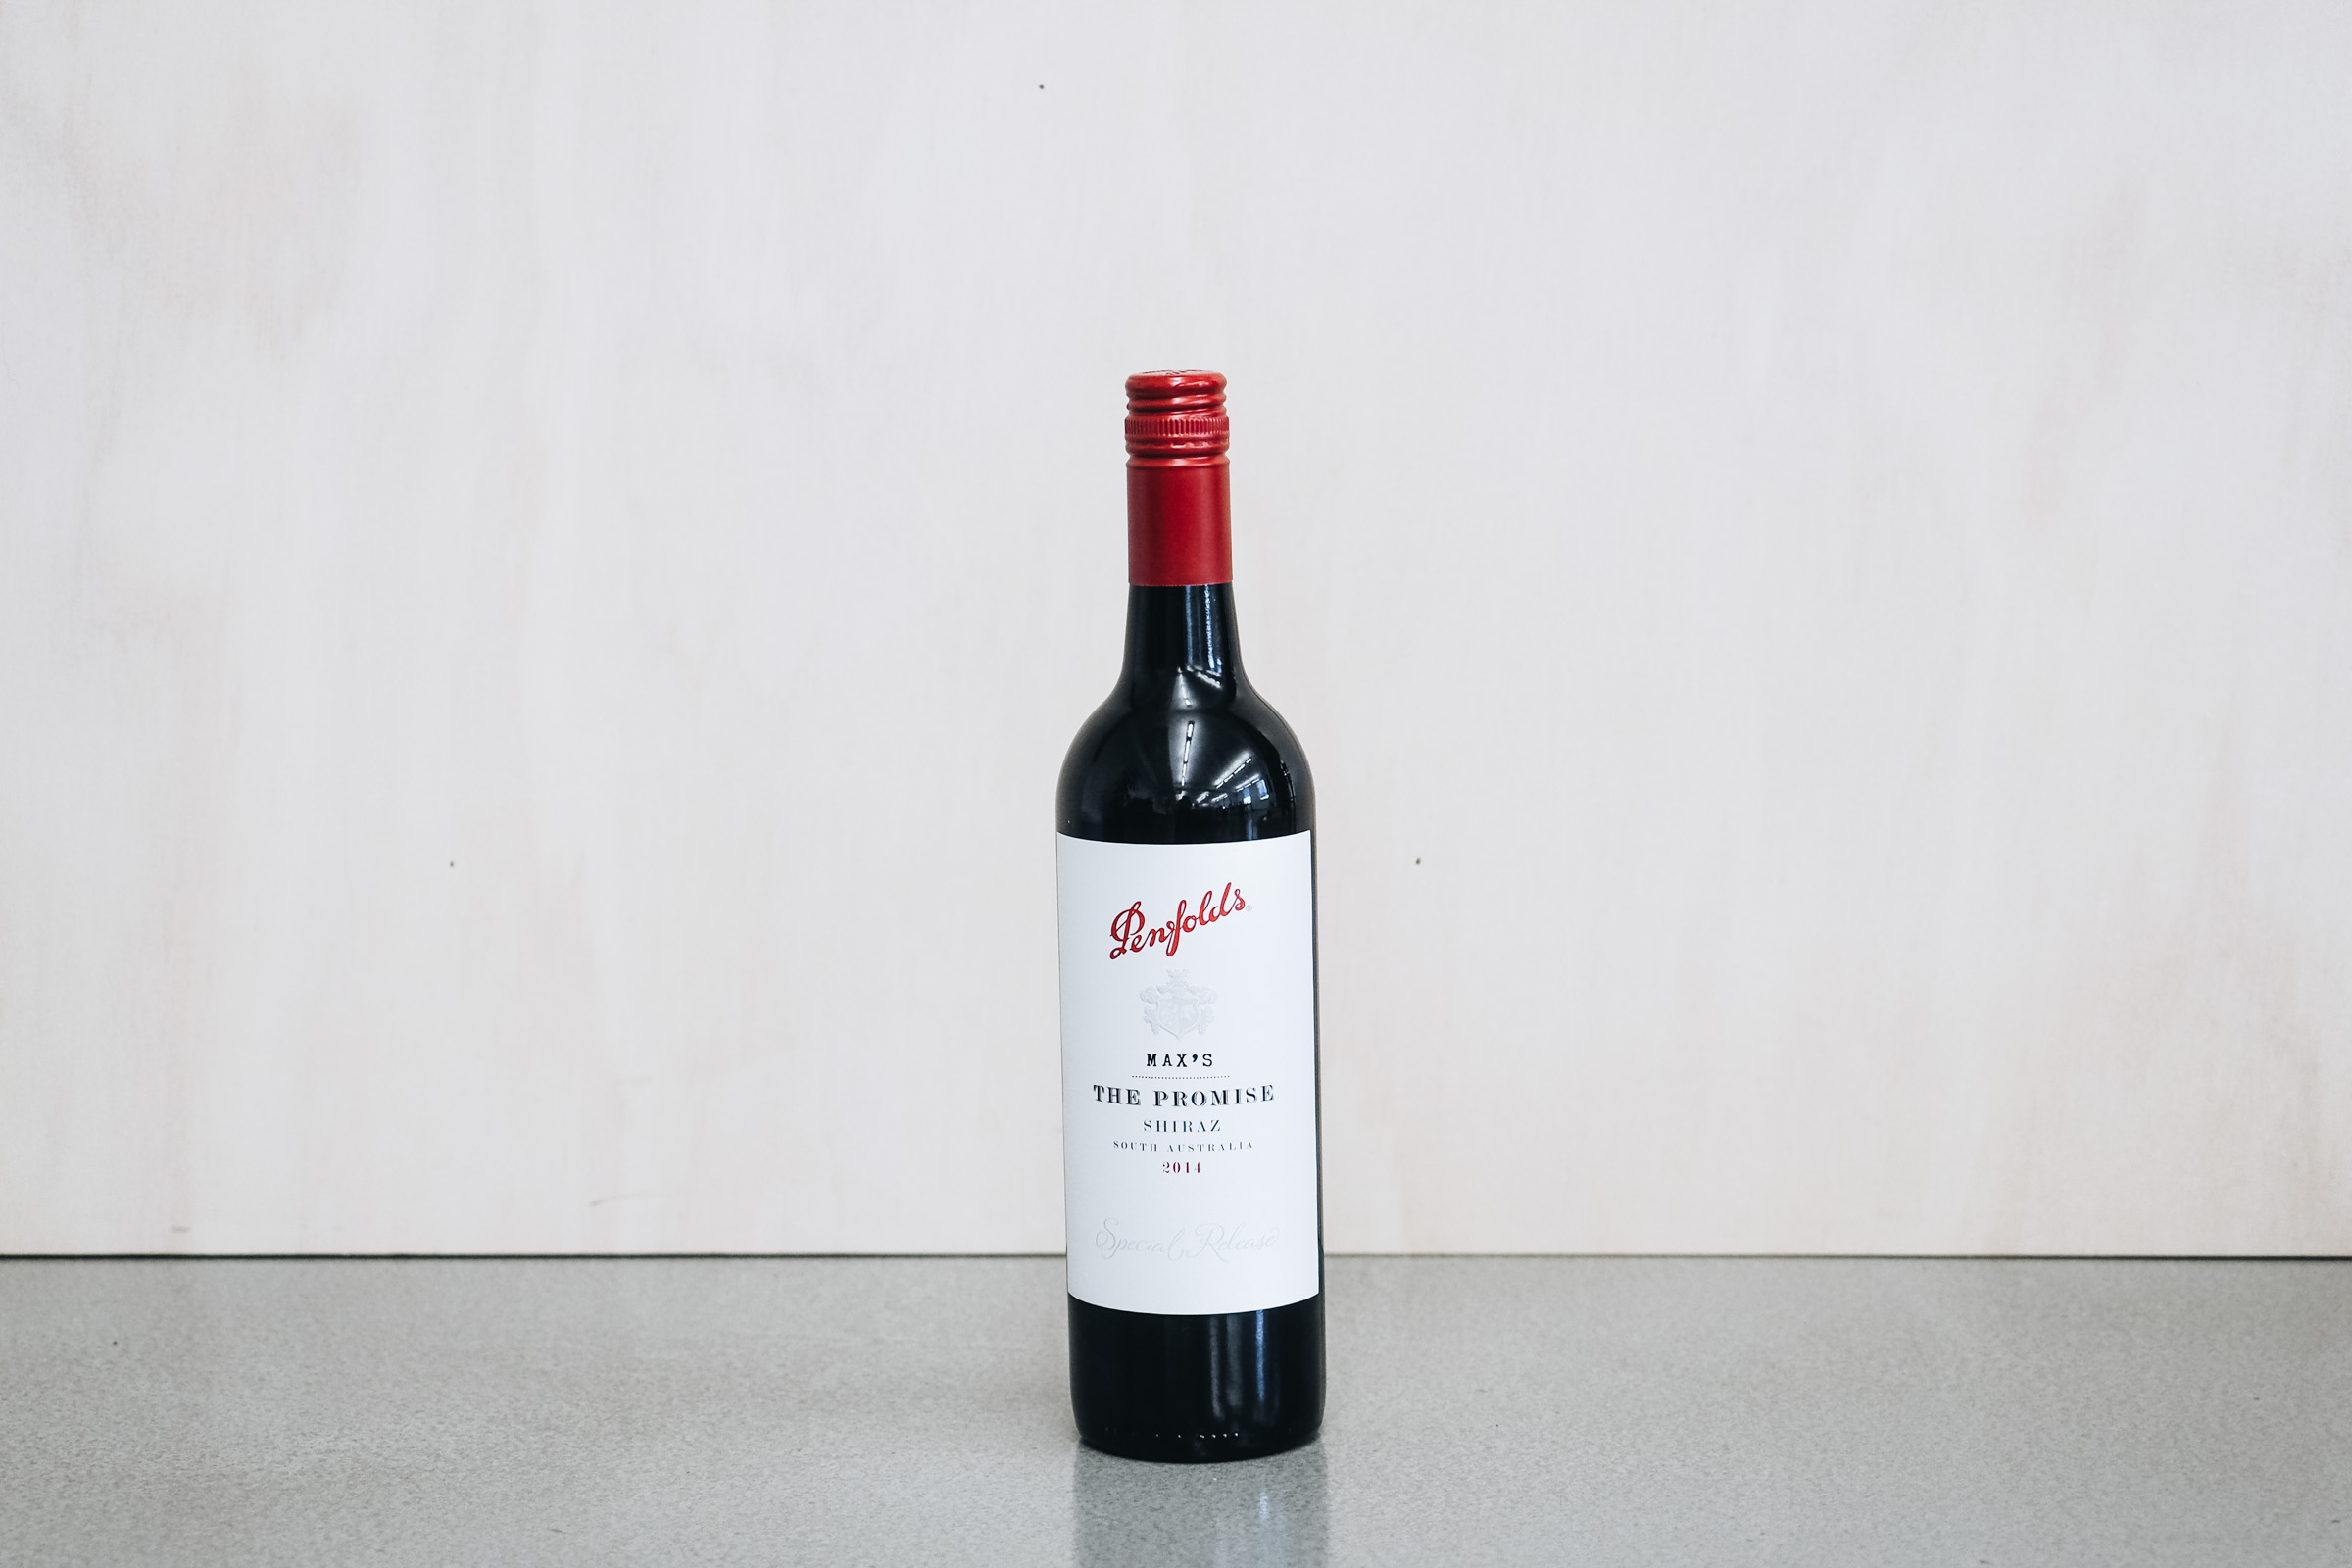 Penfolds Max's The Promise Shiraz 2014